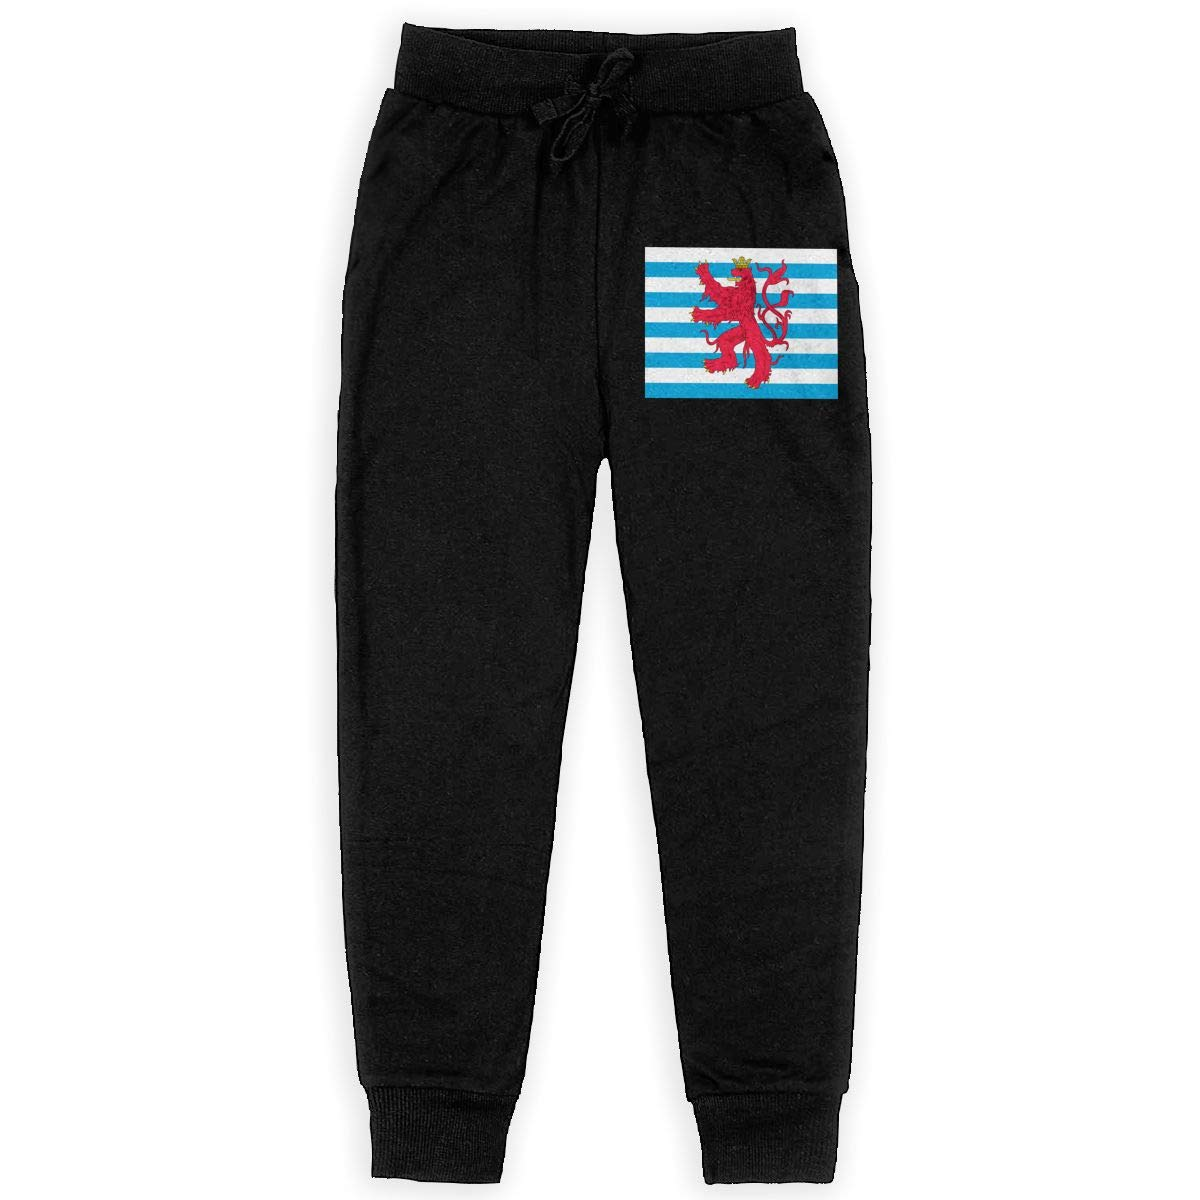 Qinf Boys Sweatpants Civil Ensign of Luxembourg Joggers Sport Training Pants Trousers Cotton Sweatpants for Youth